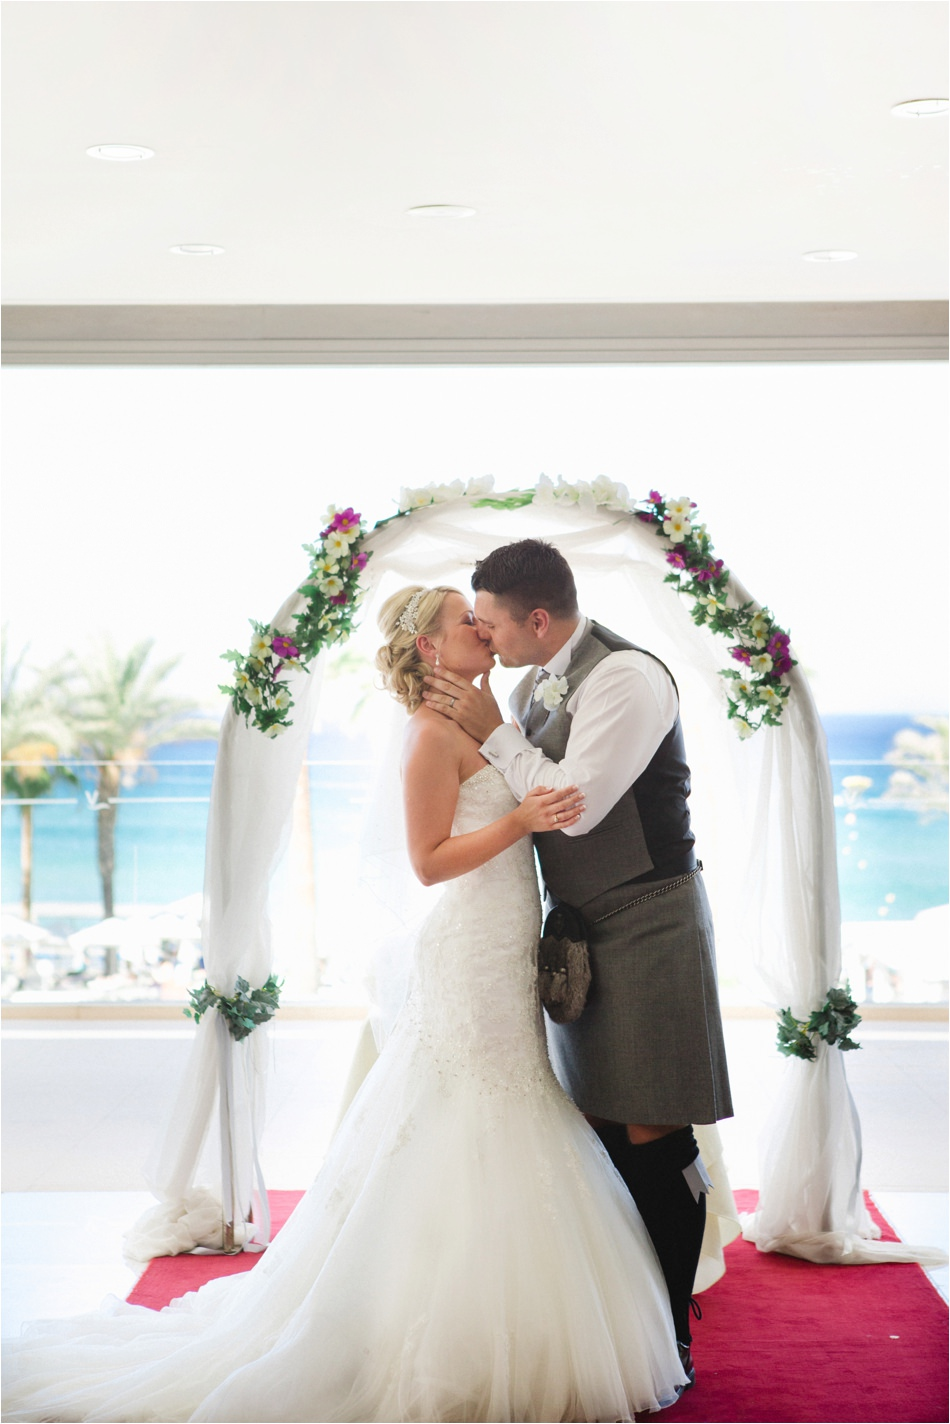 Destination wedding photographers scotland cyprus 7-1.jpg